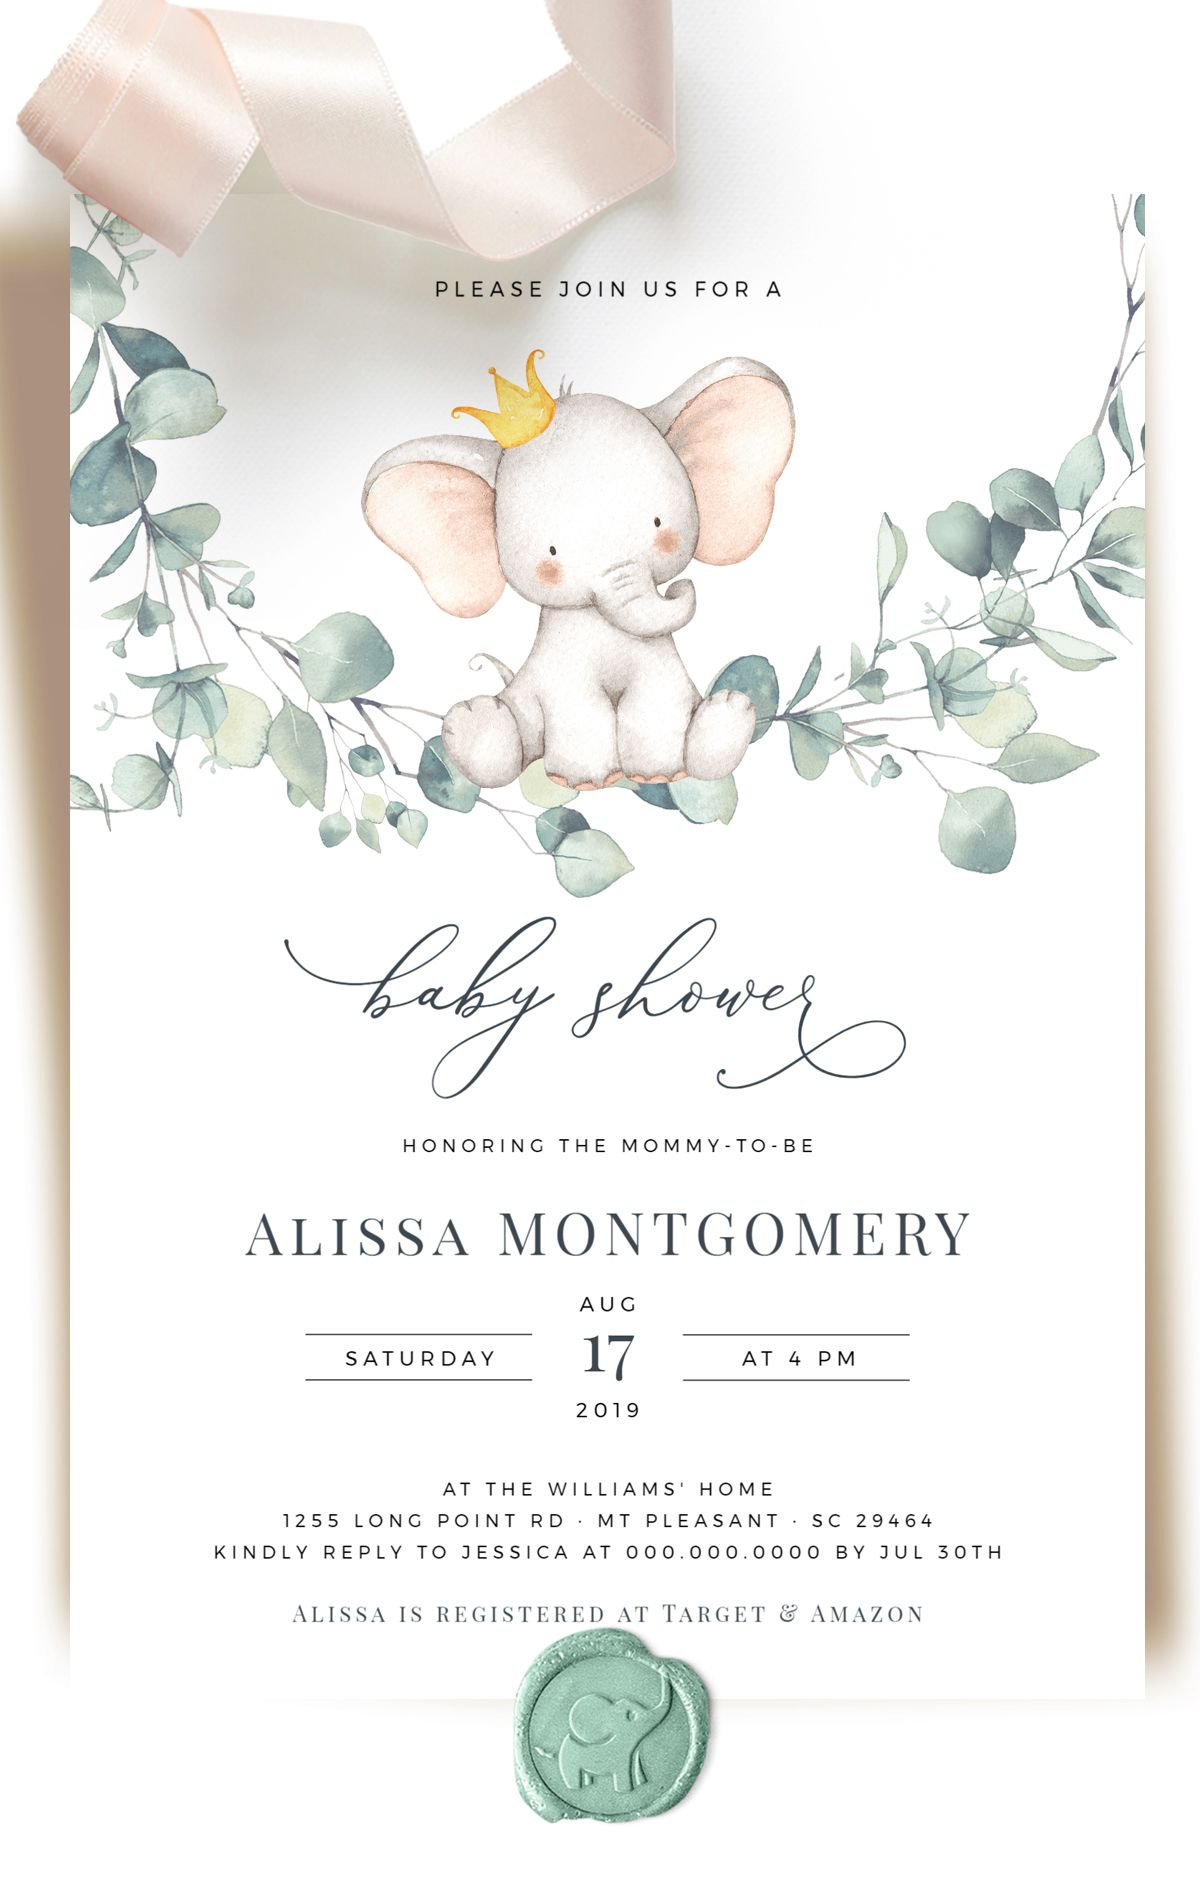 Joy Gender Neutral Baby Shower Invitation Template Watercolor Baby Elephant Boy Girl Printable Eucalyptus Baby Shower Invite Editable Gender Neutral Baby Shower Invitations Baby Shower Invites Neutral Baby Shower Invitation Templates